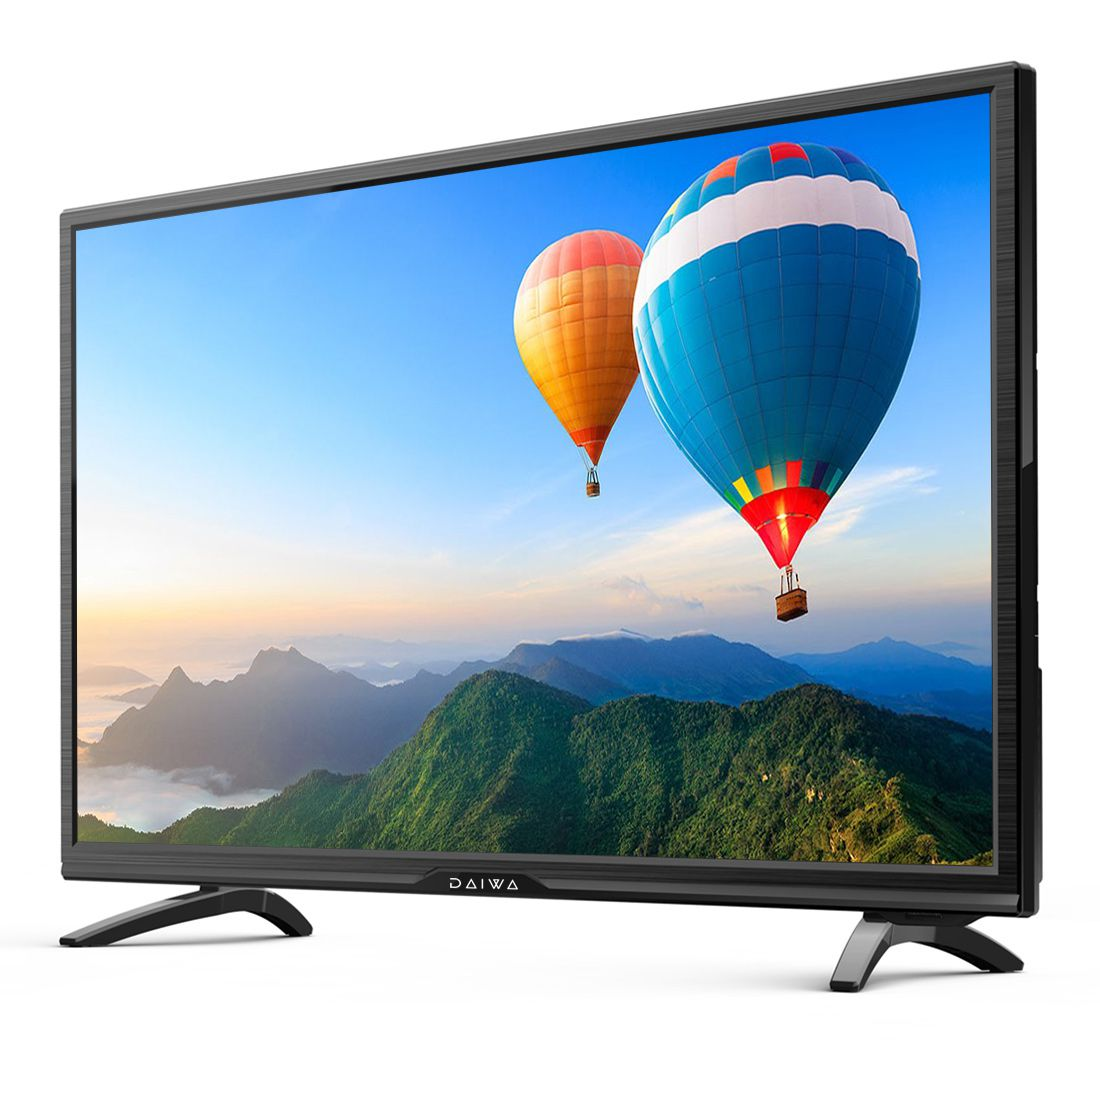 Slim Led Tv's Starting At Rs.10,490 By Snapdeal | Daiwa D32D2 80 cm ( 31.5 ) HD Ready (HDR) LED Television @ Rs.10,590